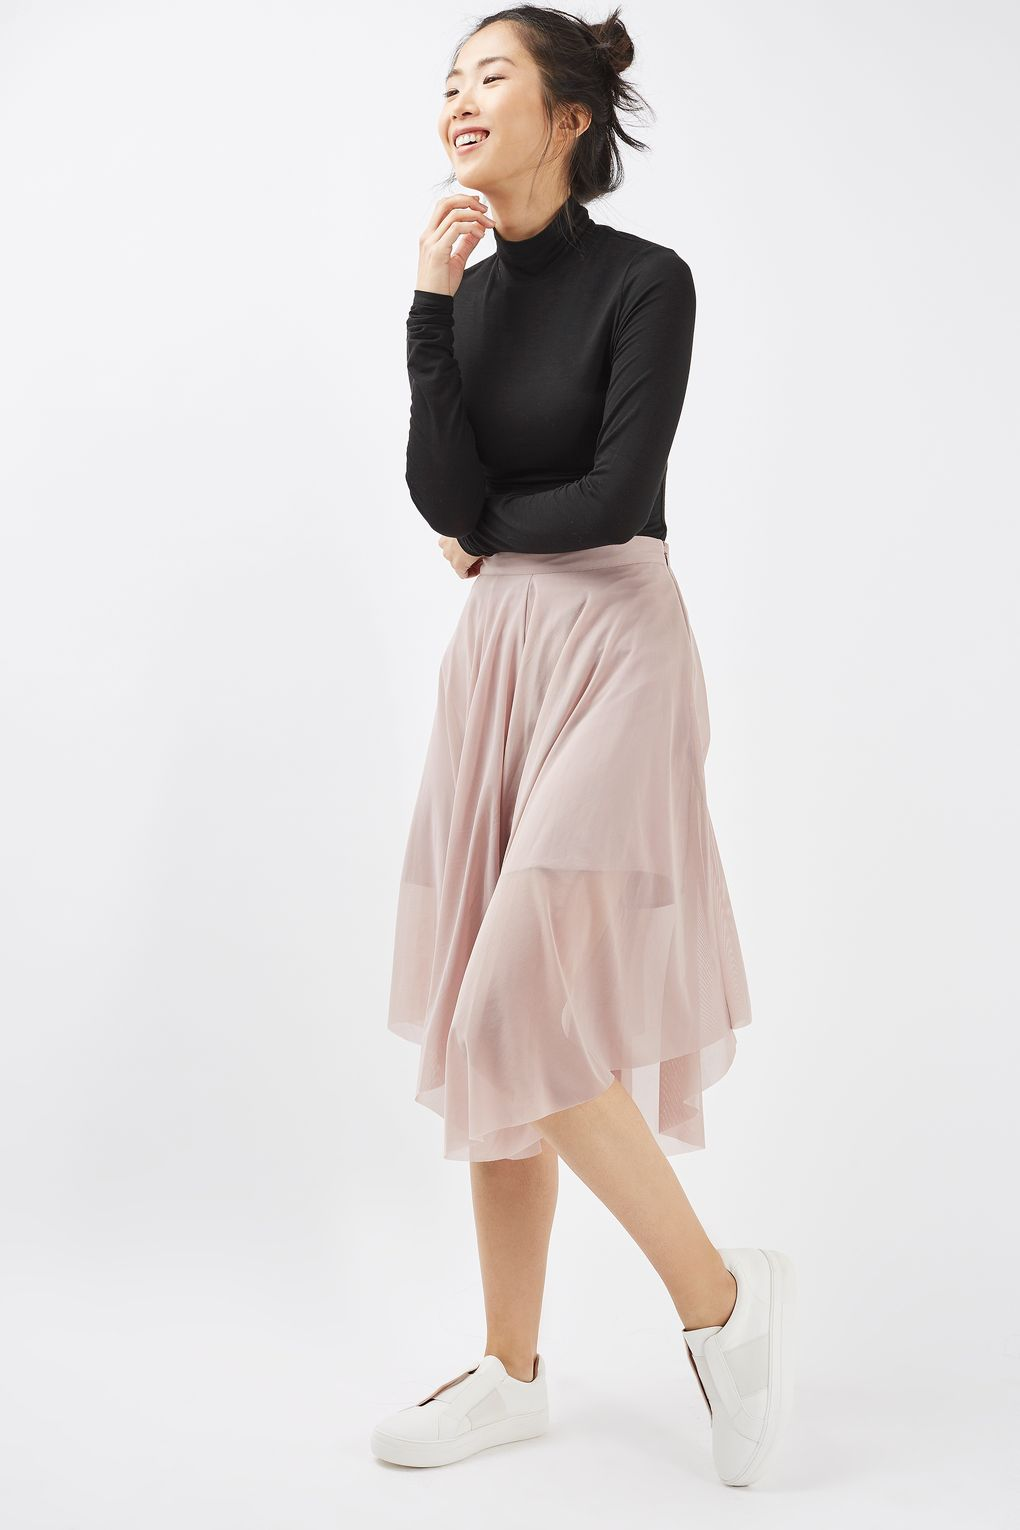 Tulle Midi Skirt | Tulle Skirt Women | Womens Tulle Dress